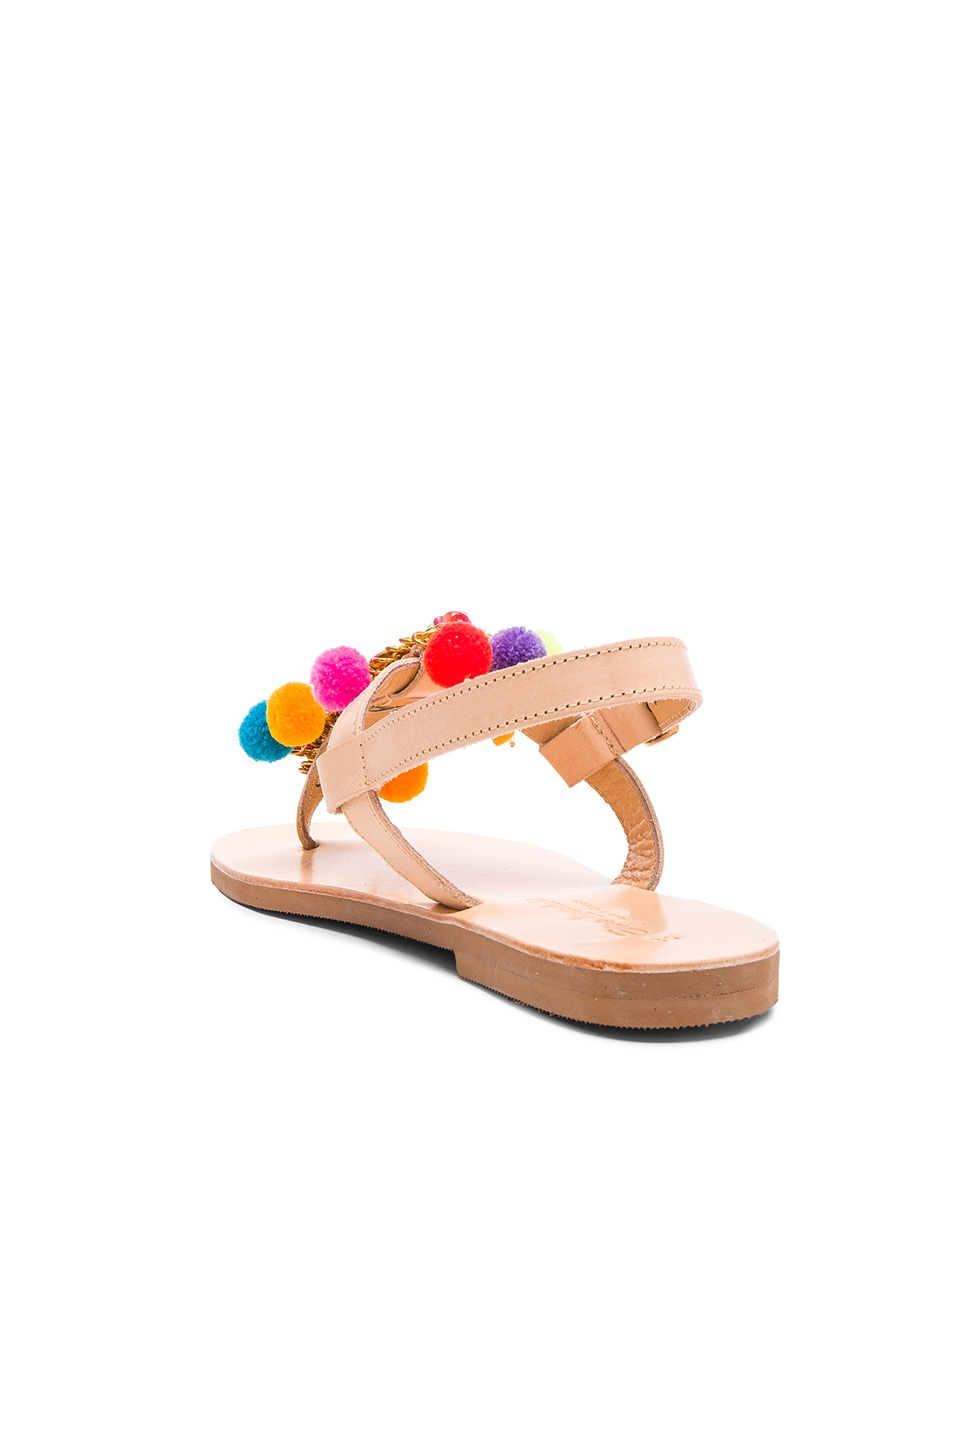 Leather Sandals Jelly Tots, ELINA LINARDAKI Elina Linardaki